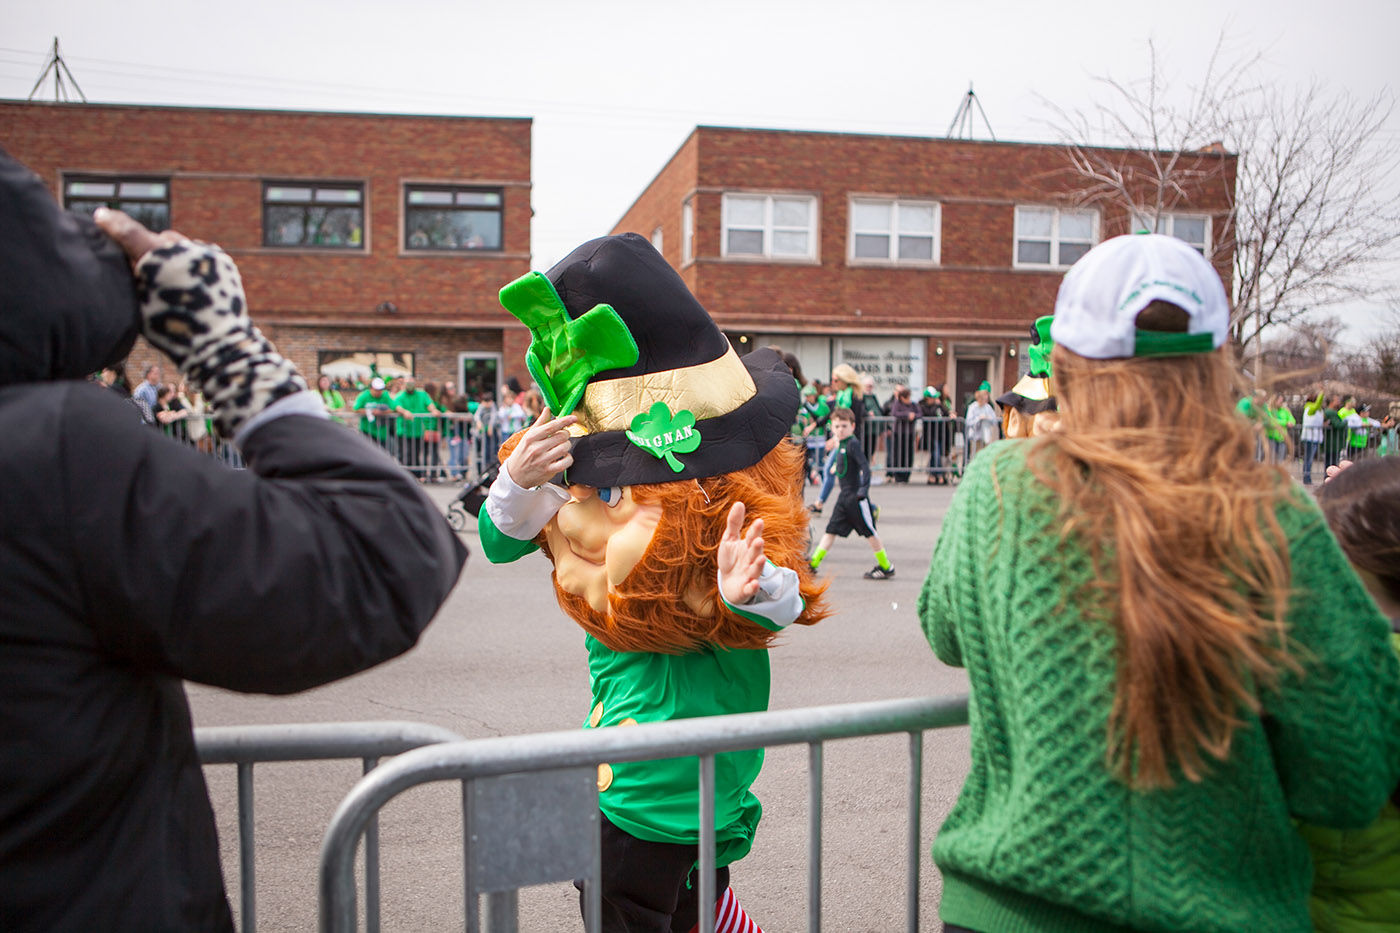 Leprechaun at the Chicago South Side Irish Parade 2015 - St. Patrick's Day